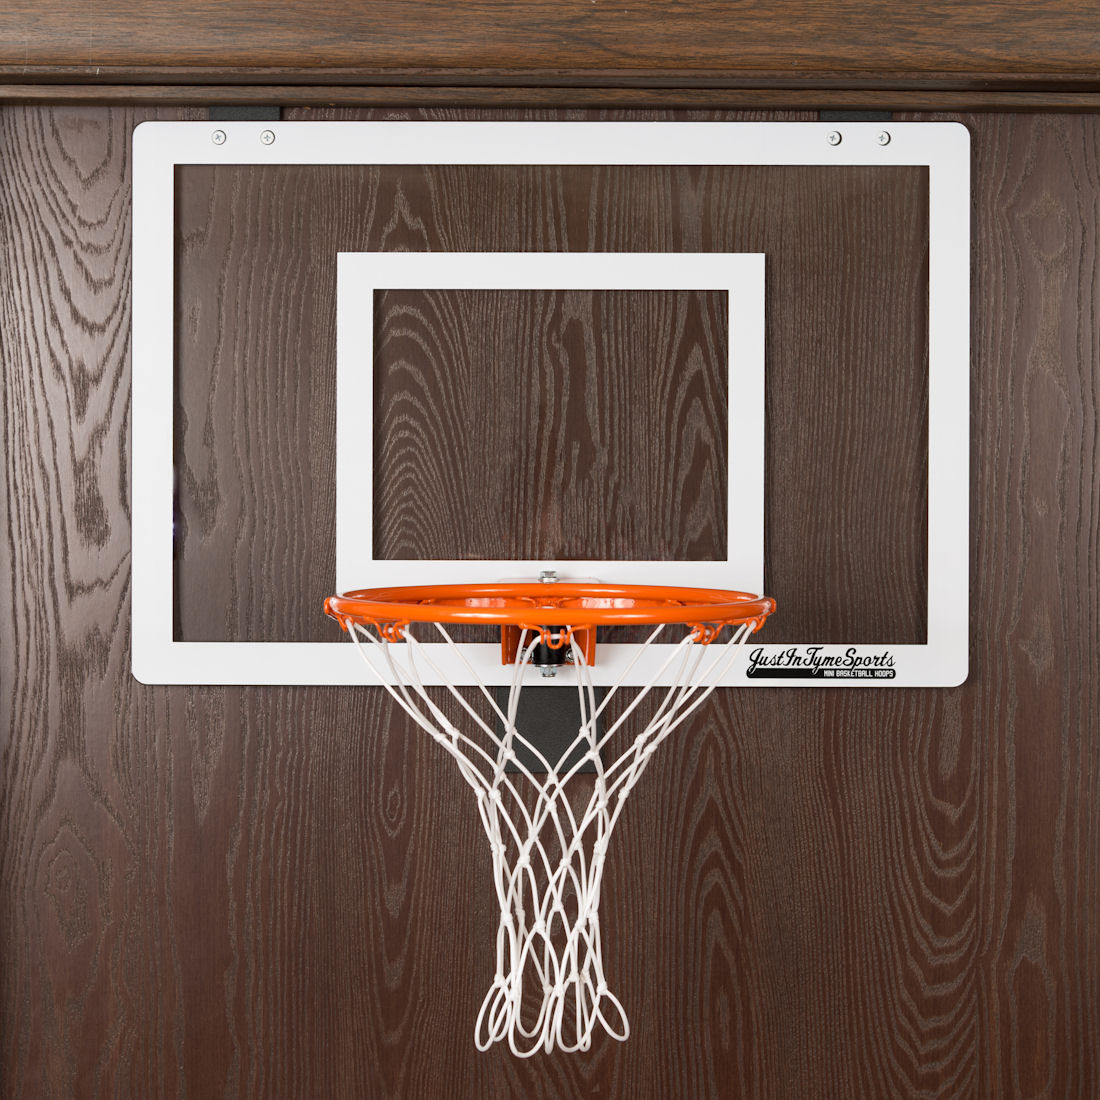 Door Mounted & Door Mounted Mini Basketball Hoops | JustInTymeSports Pezcame.Com